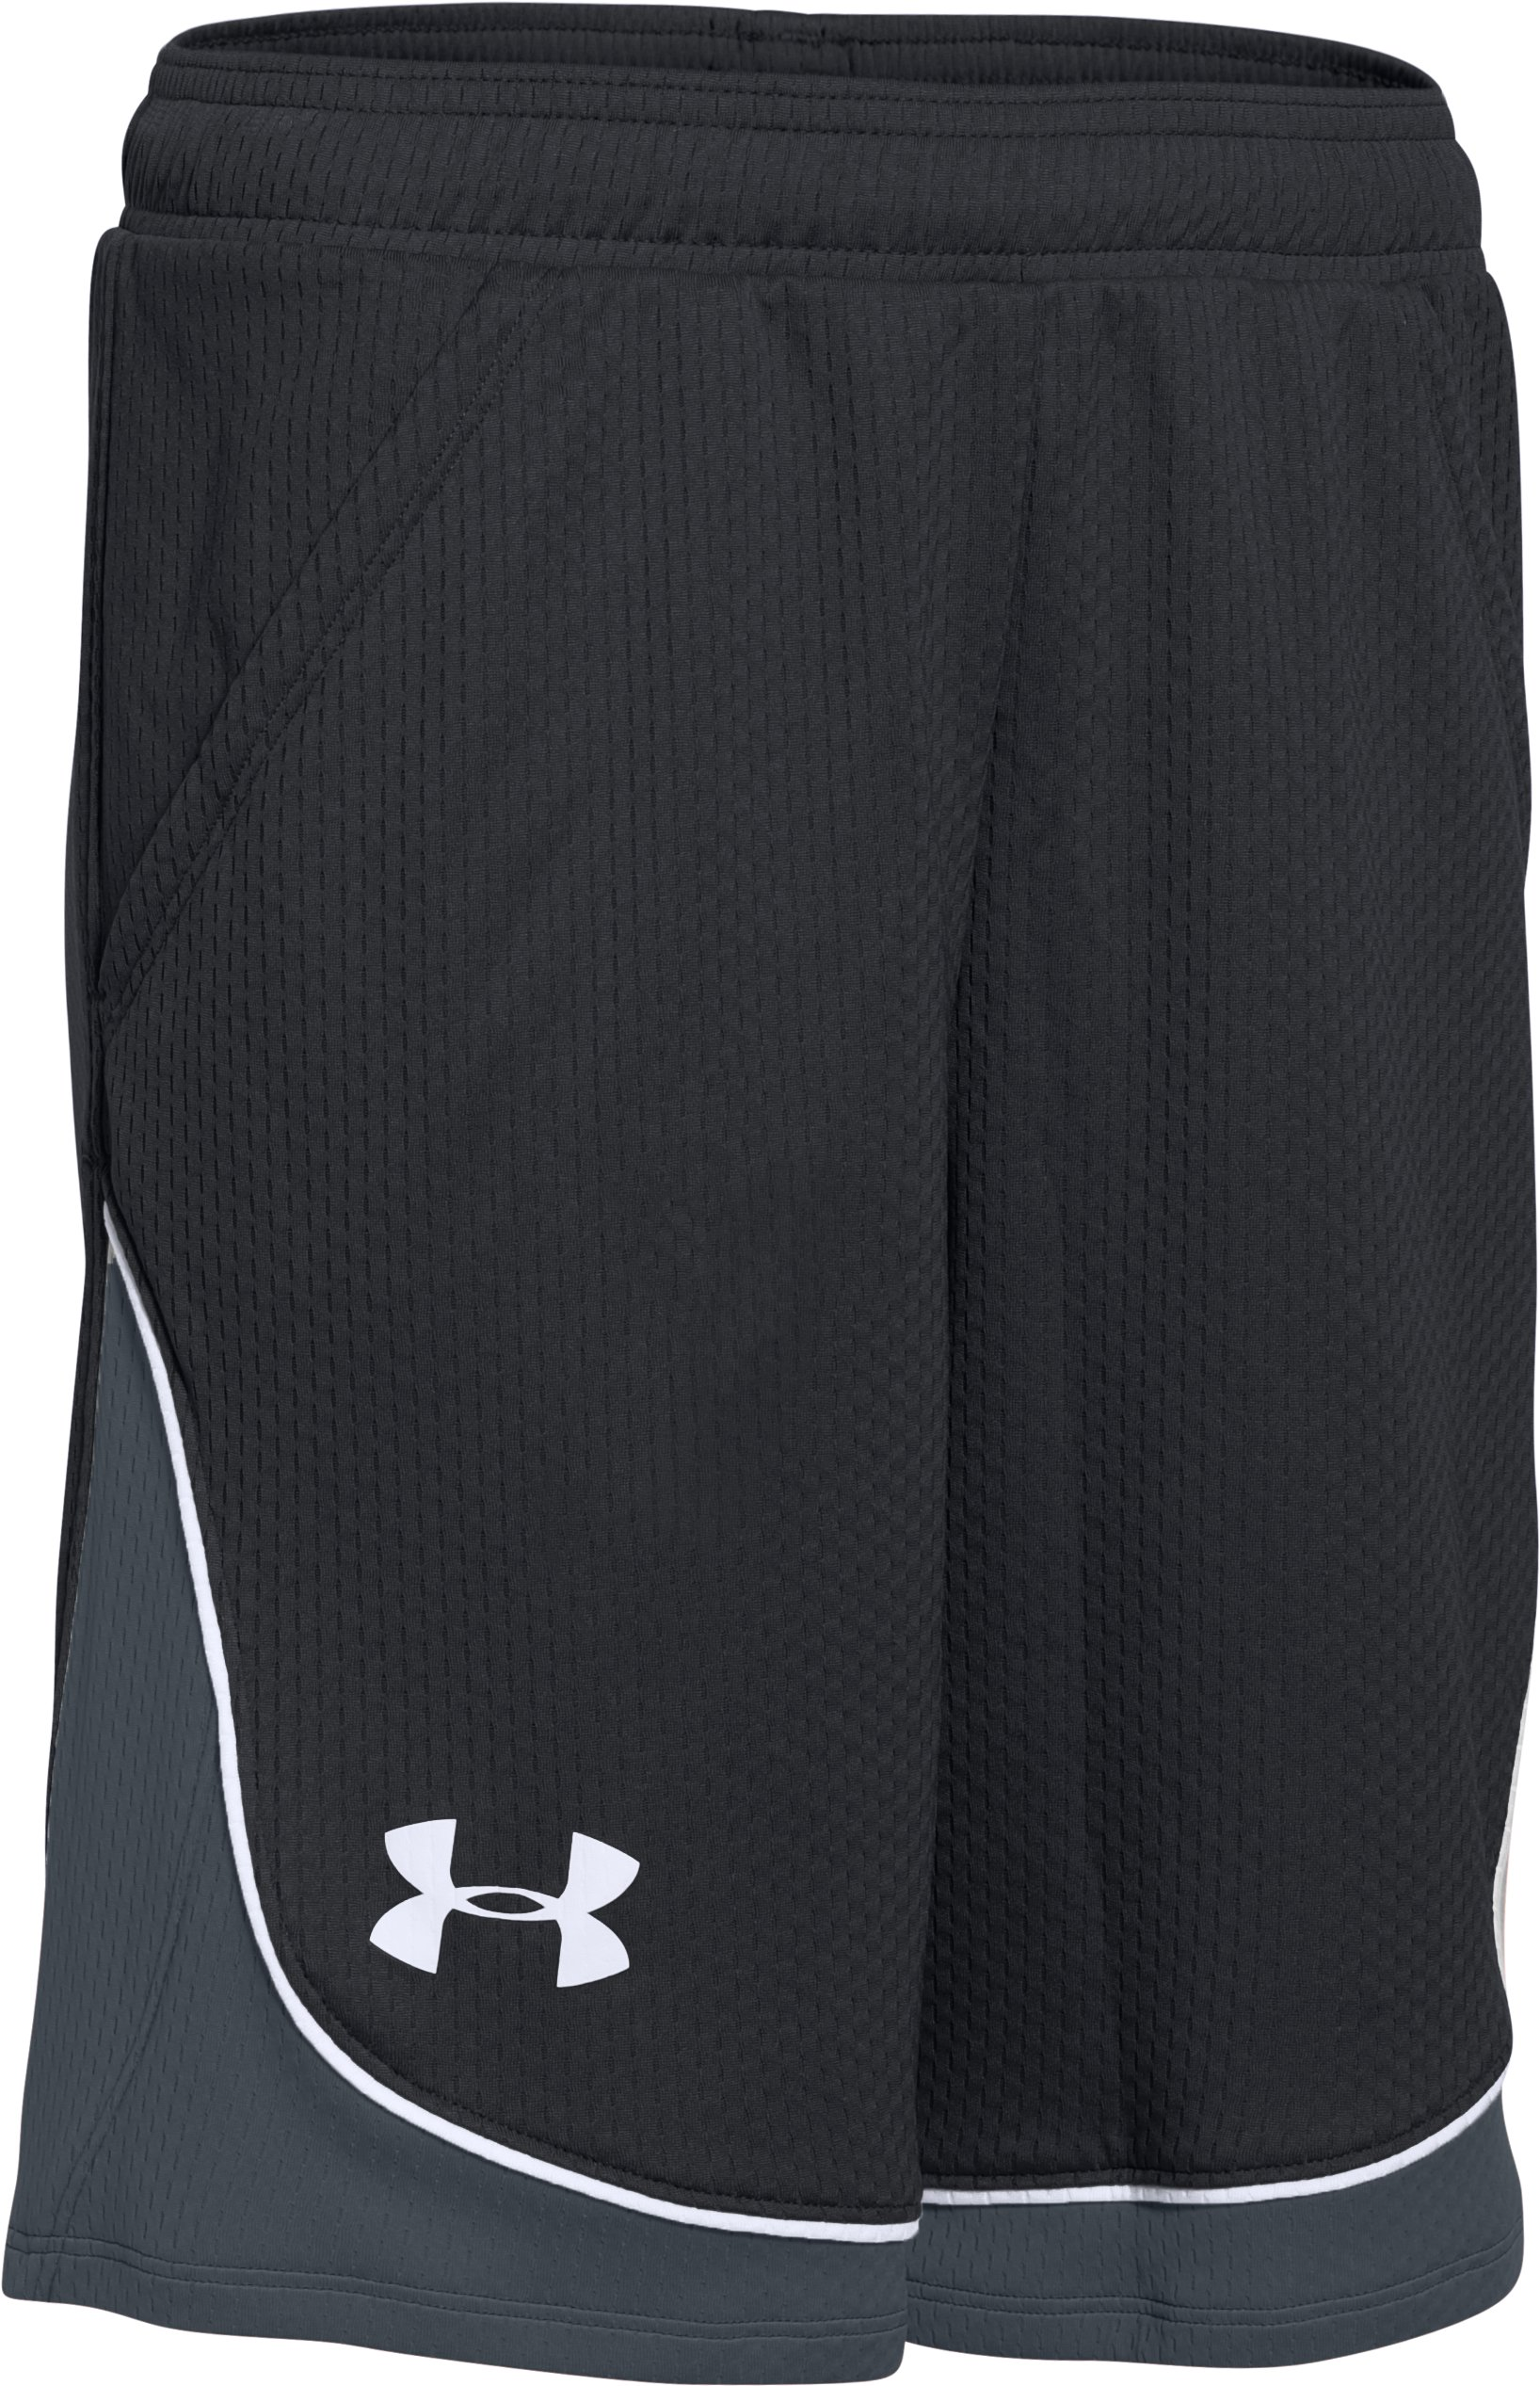 Girls' UA Pop A Shot Basketball Short, Black , zoomed image